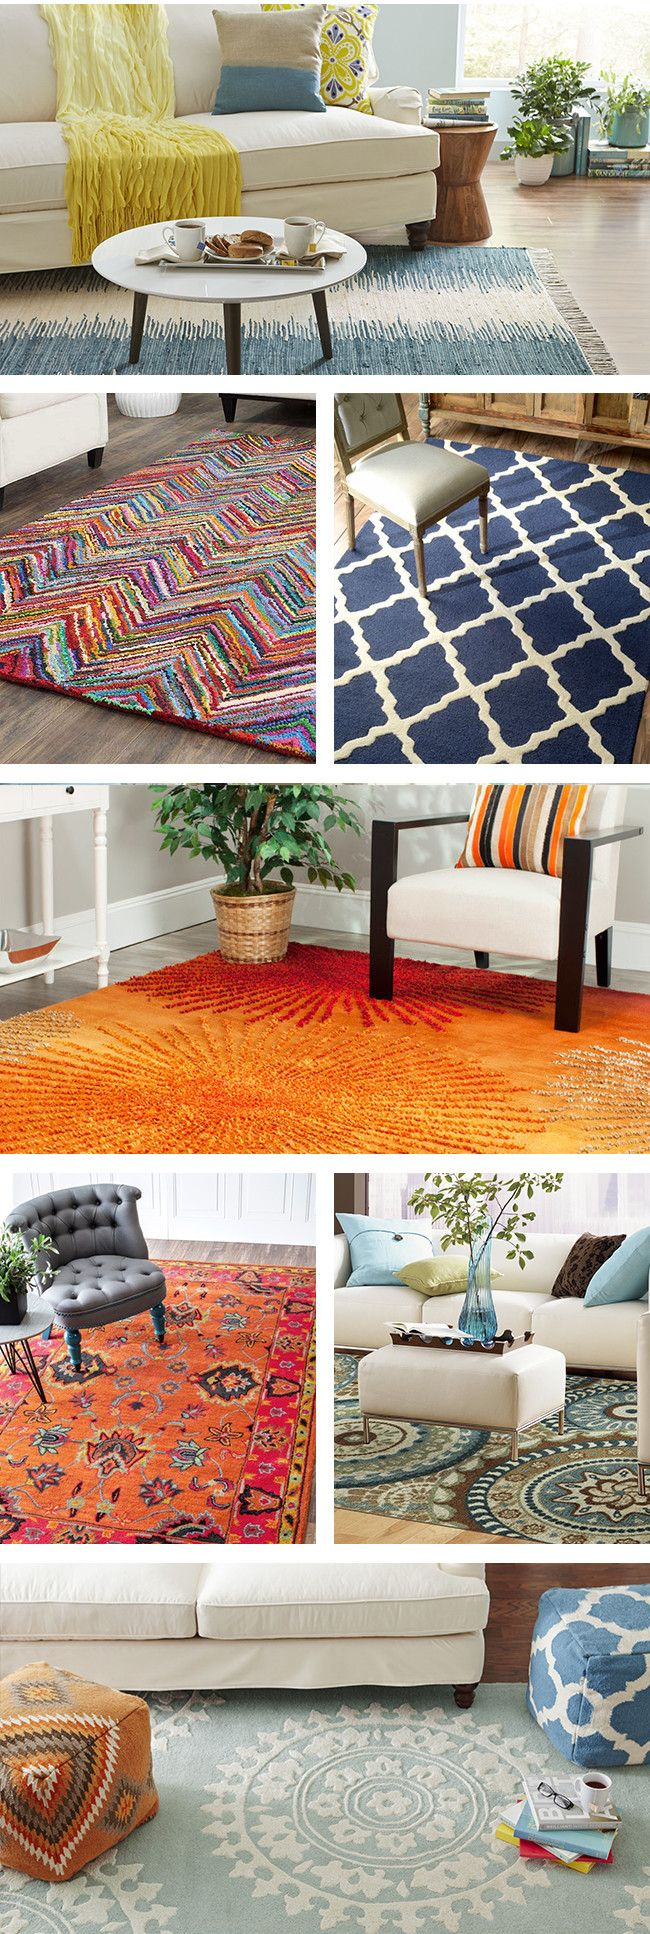 From the entryway to the bedroom, area rugs can complete the look of a room, set the tone, and add an extra layer of comfort—or all three! Visit Wayfair and sign up today to get access to exclusive deals everyday up to 70% off. Free shipping on all orders over $49.